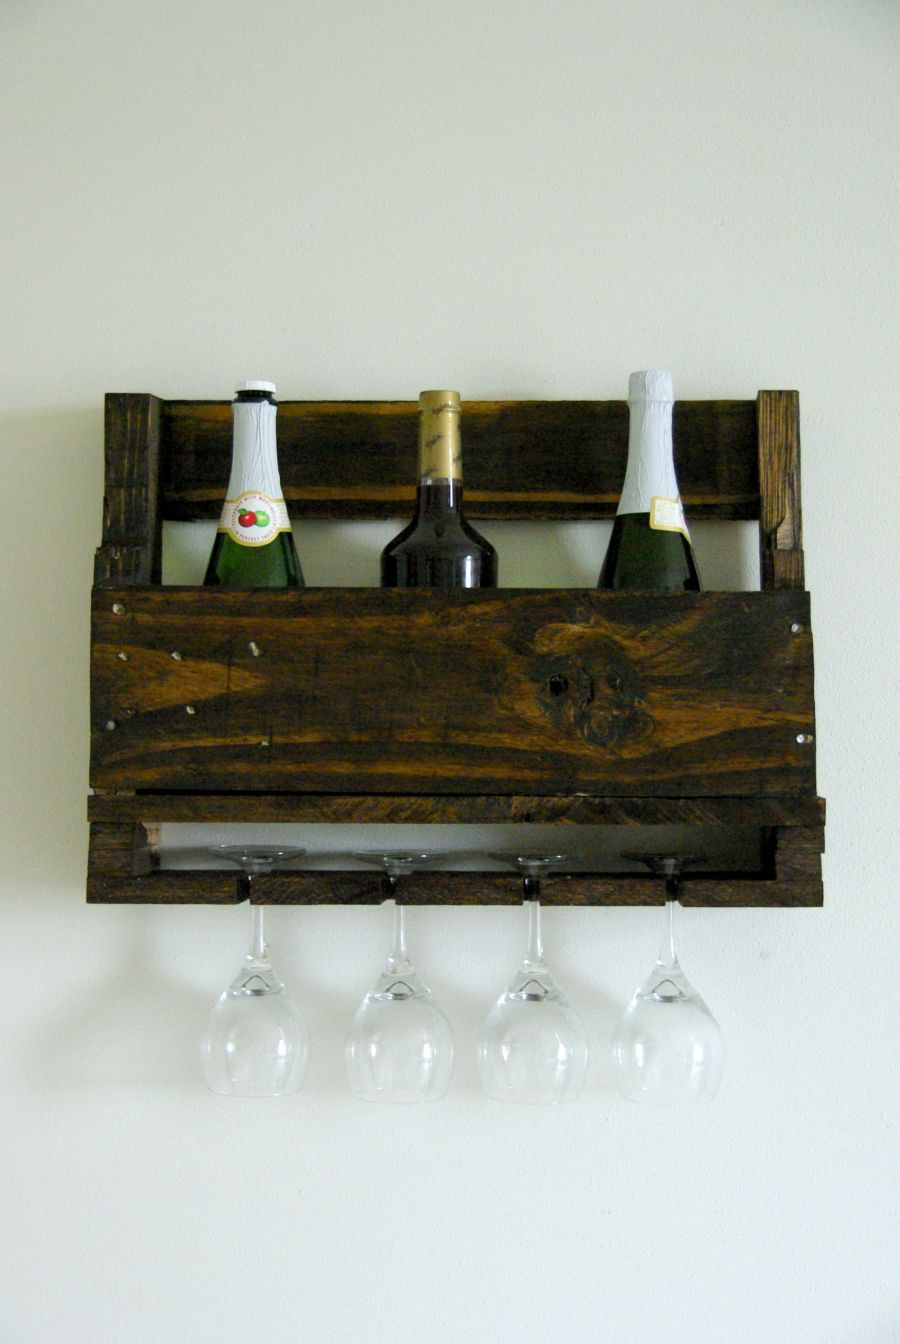 how to build a wine bottle rack